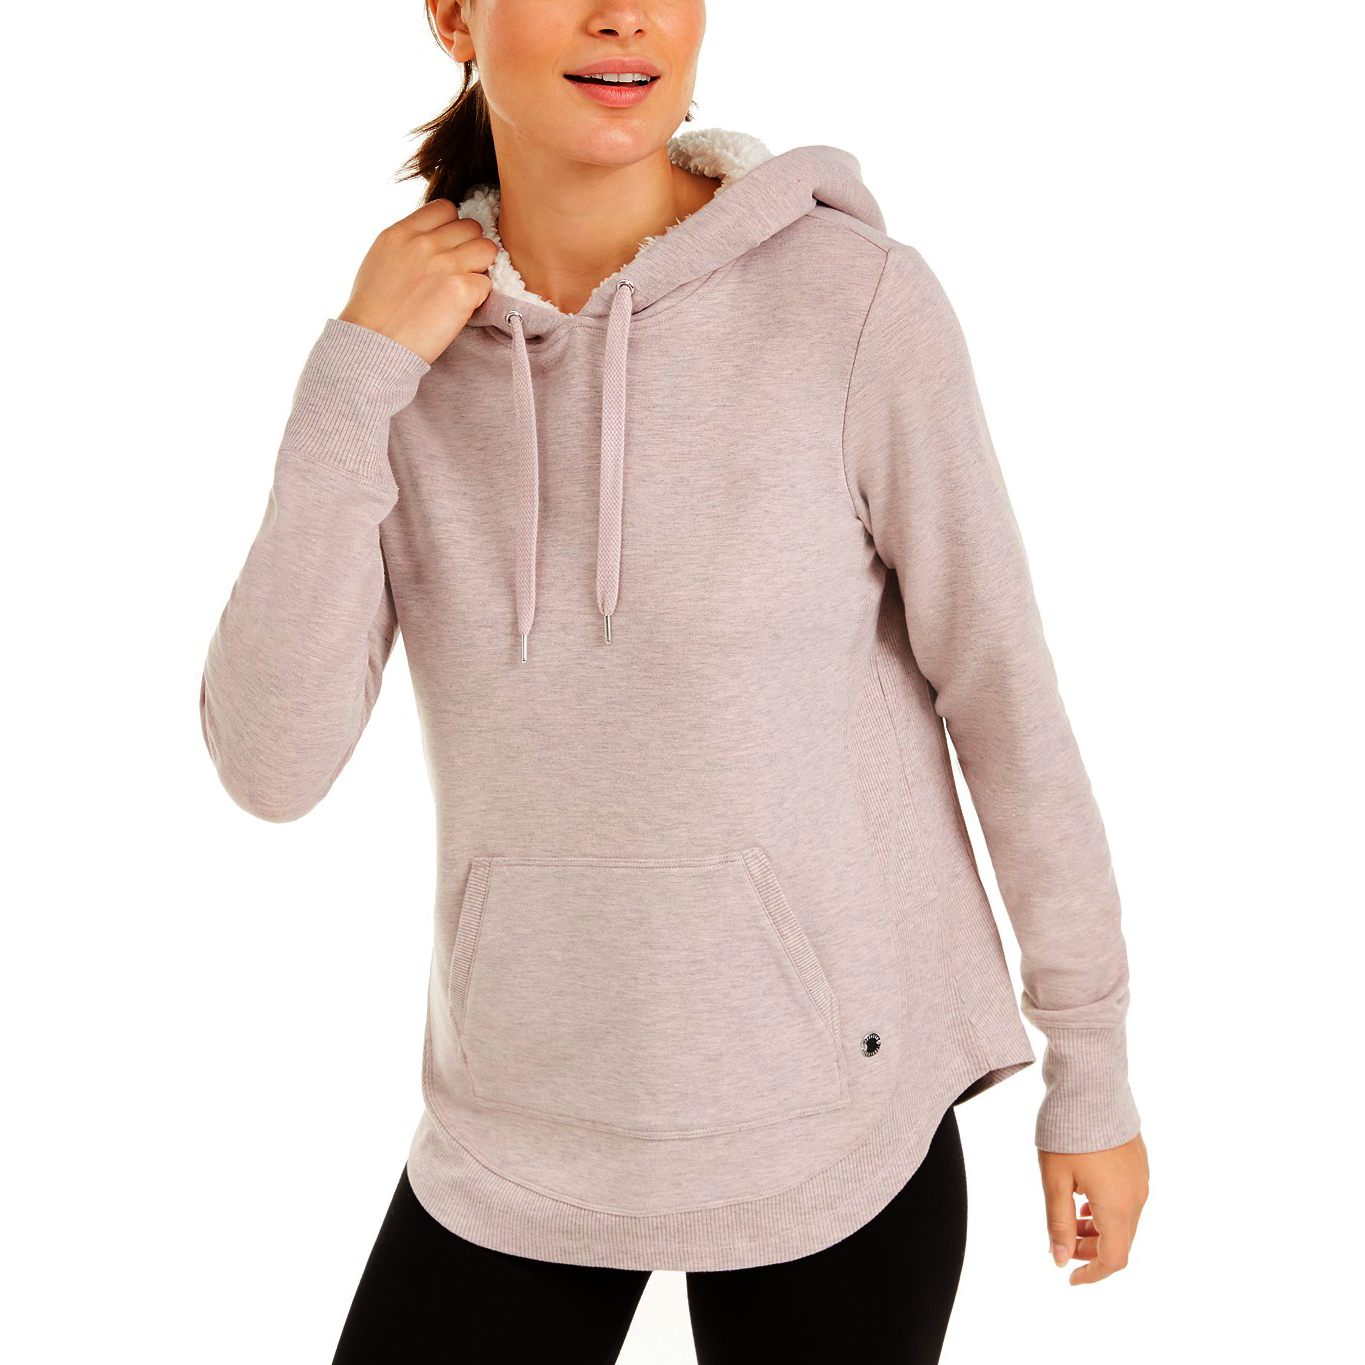 Primary image for Ideology Sherpa Round Hem Hoodie, Pink Heather, M